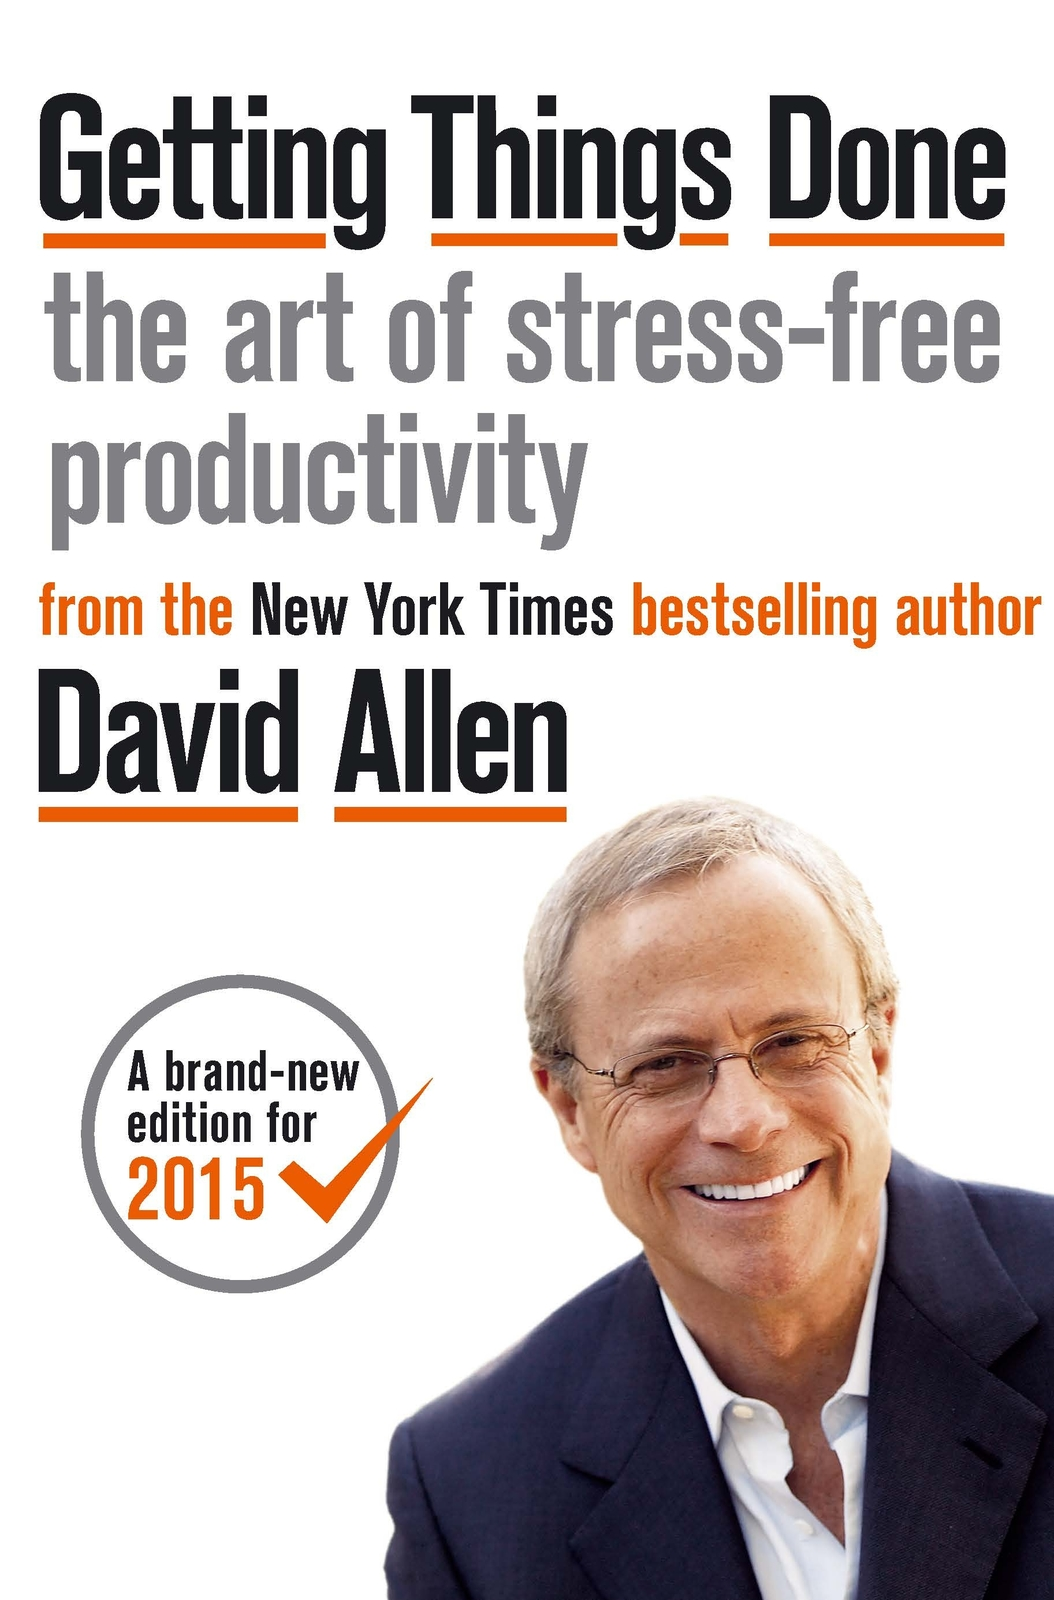 Getting Things Done by David Allen image